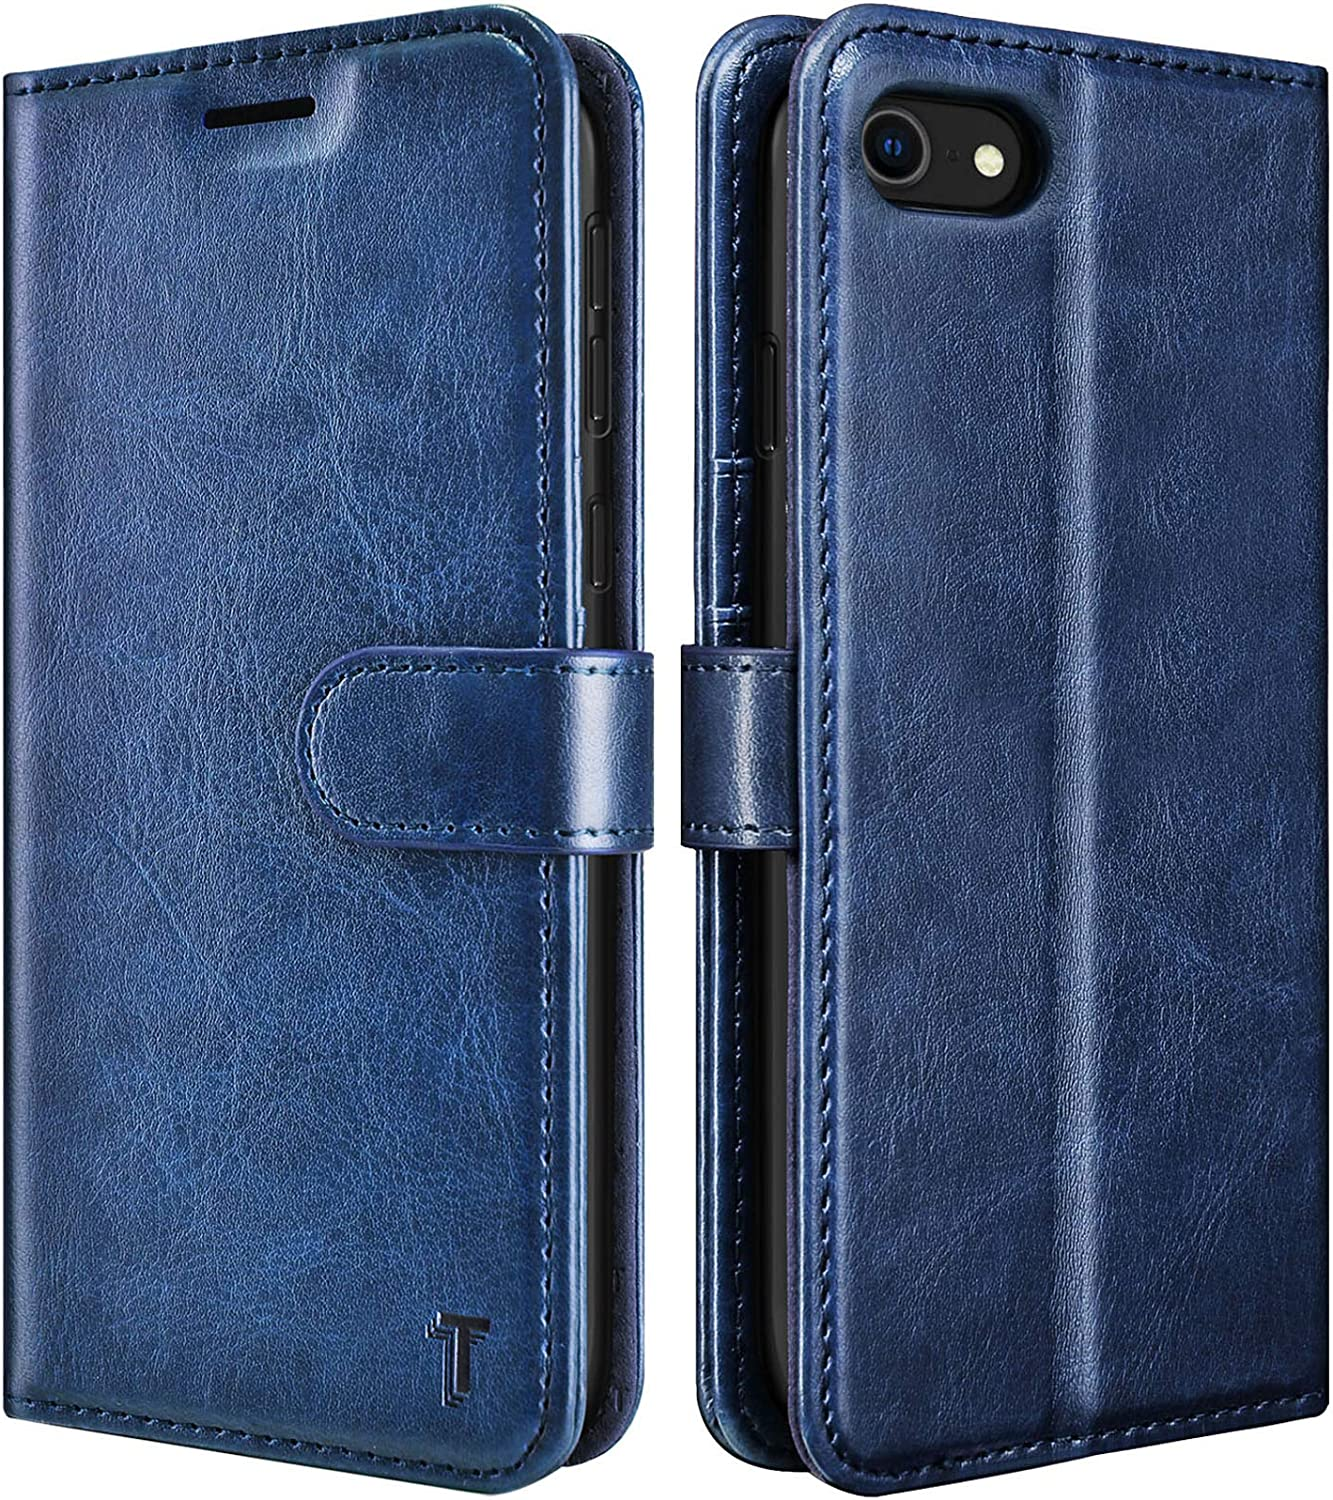 Tekcoo Wallet Case for iPhone SE 2020 / iPhone 7 / iPhone 8 (4.7 inch) Premium Vegan Leather [RFID Blocking] Luxury ID Cash Credit Card Slots Holder Carrying Pouch Folio Flip Cover Cases [Navy Blue]